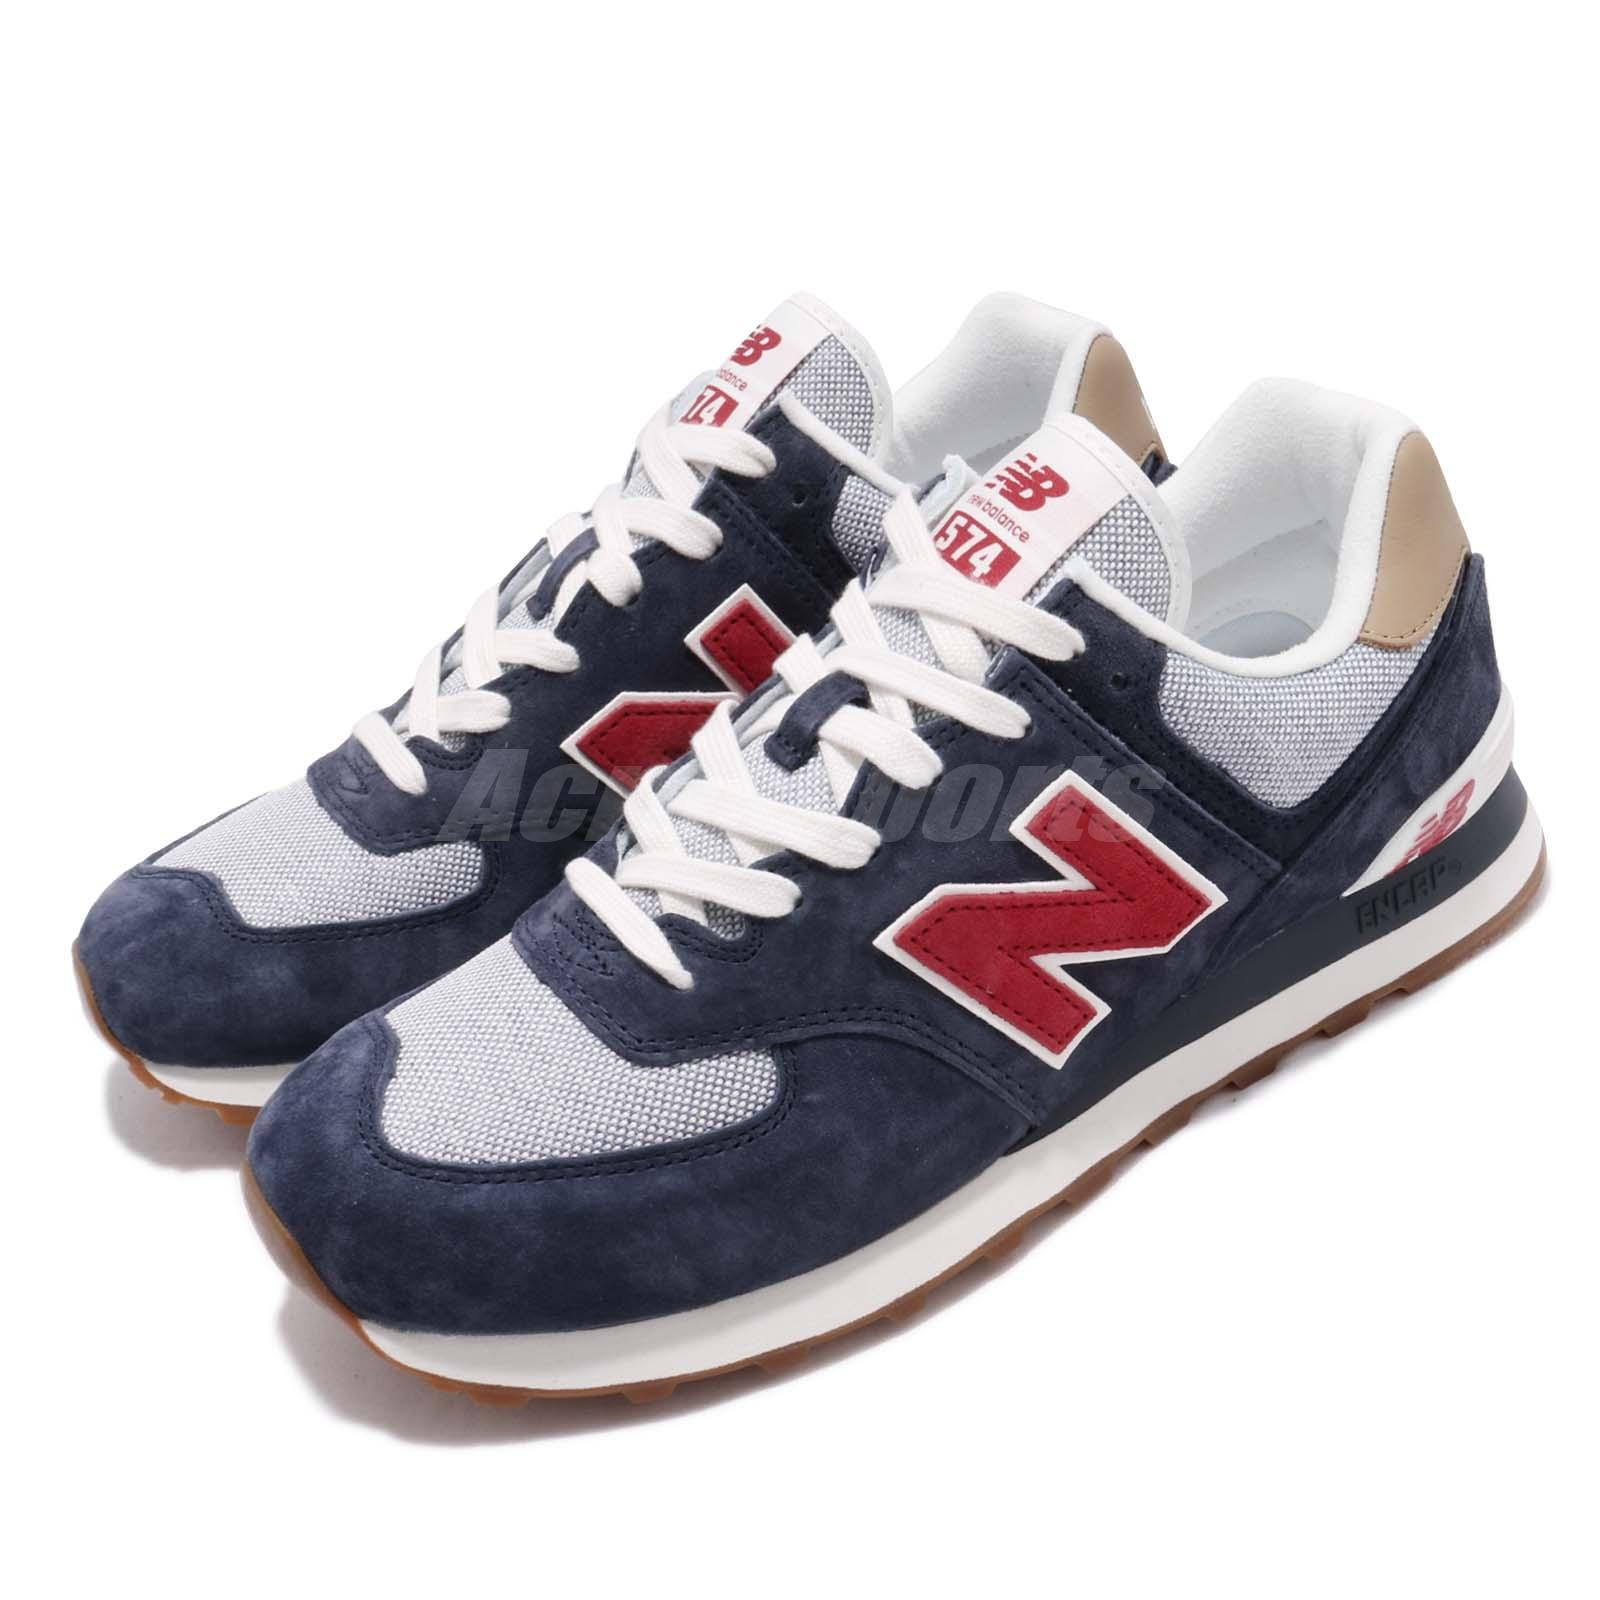 newest b52dd 1cb49 Details about New Balance ML574PTR D Navy Red White Gum Men Running Shoes  Sneakers ML574PTRD